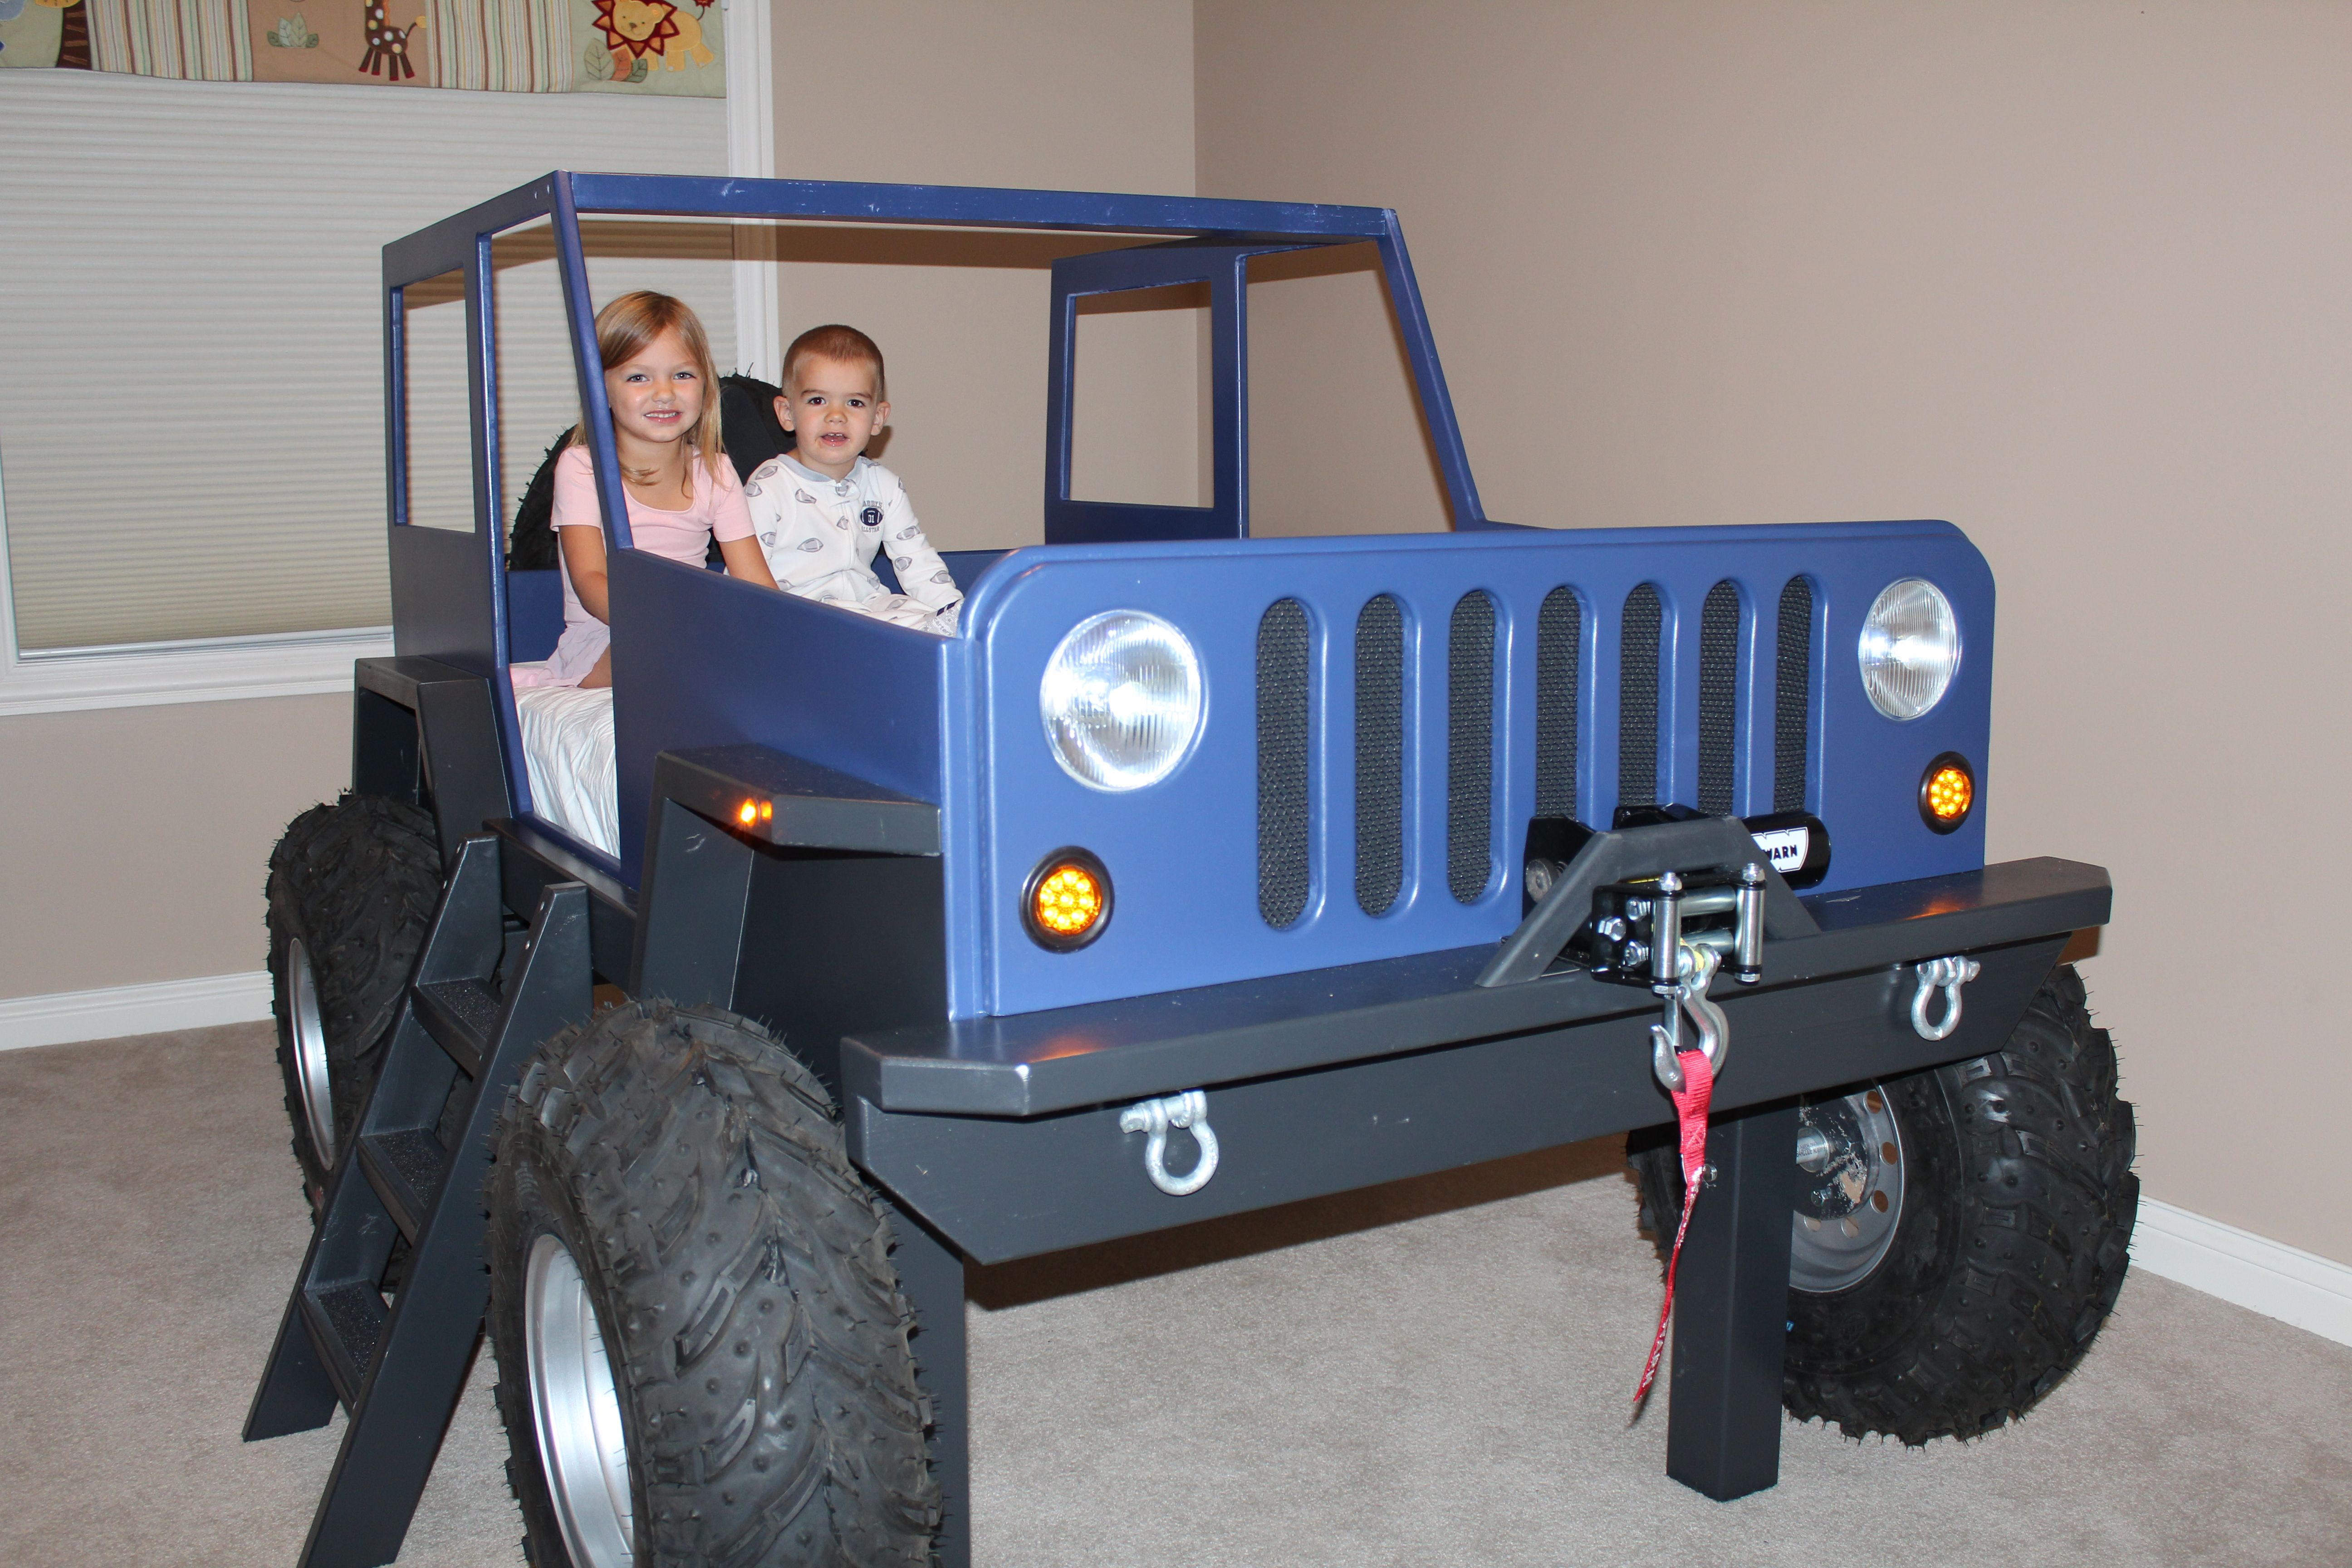 Pin By Stephanie Forck On Kids In 2019 Jeep Bed Kids Jeep Cool